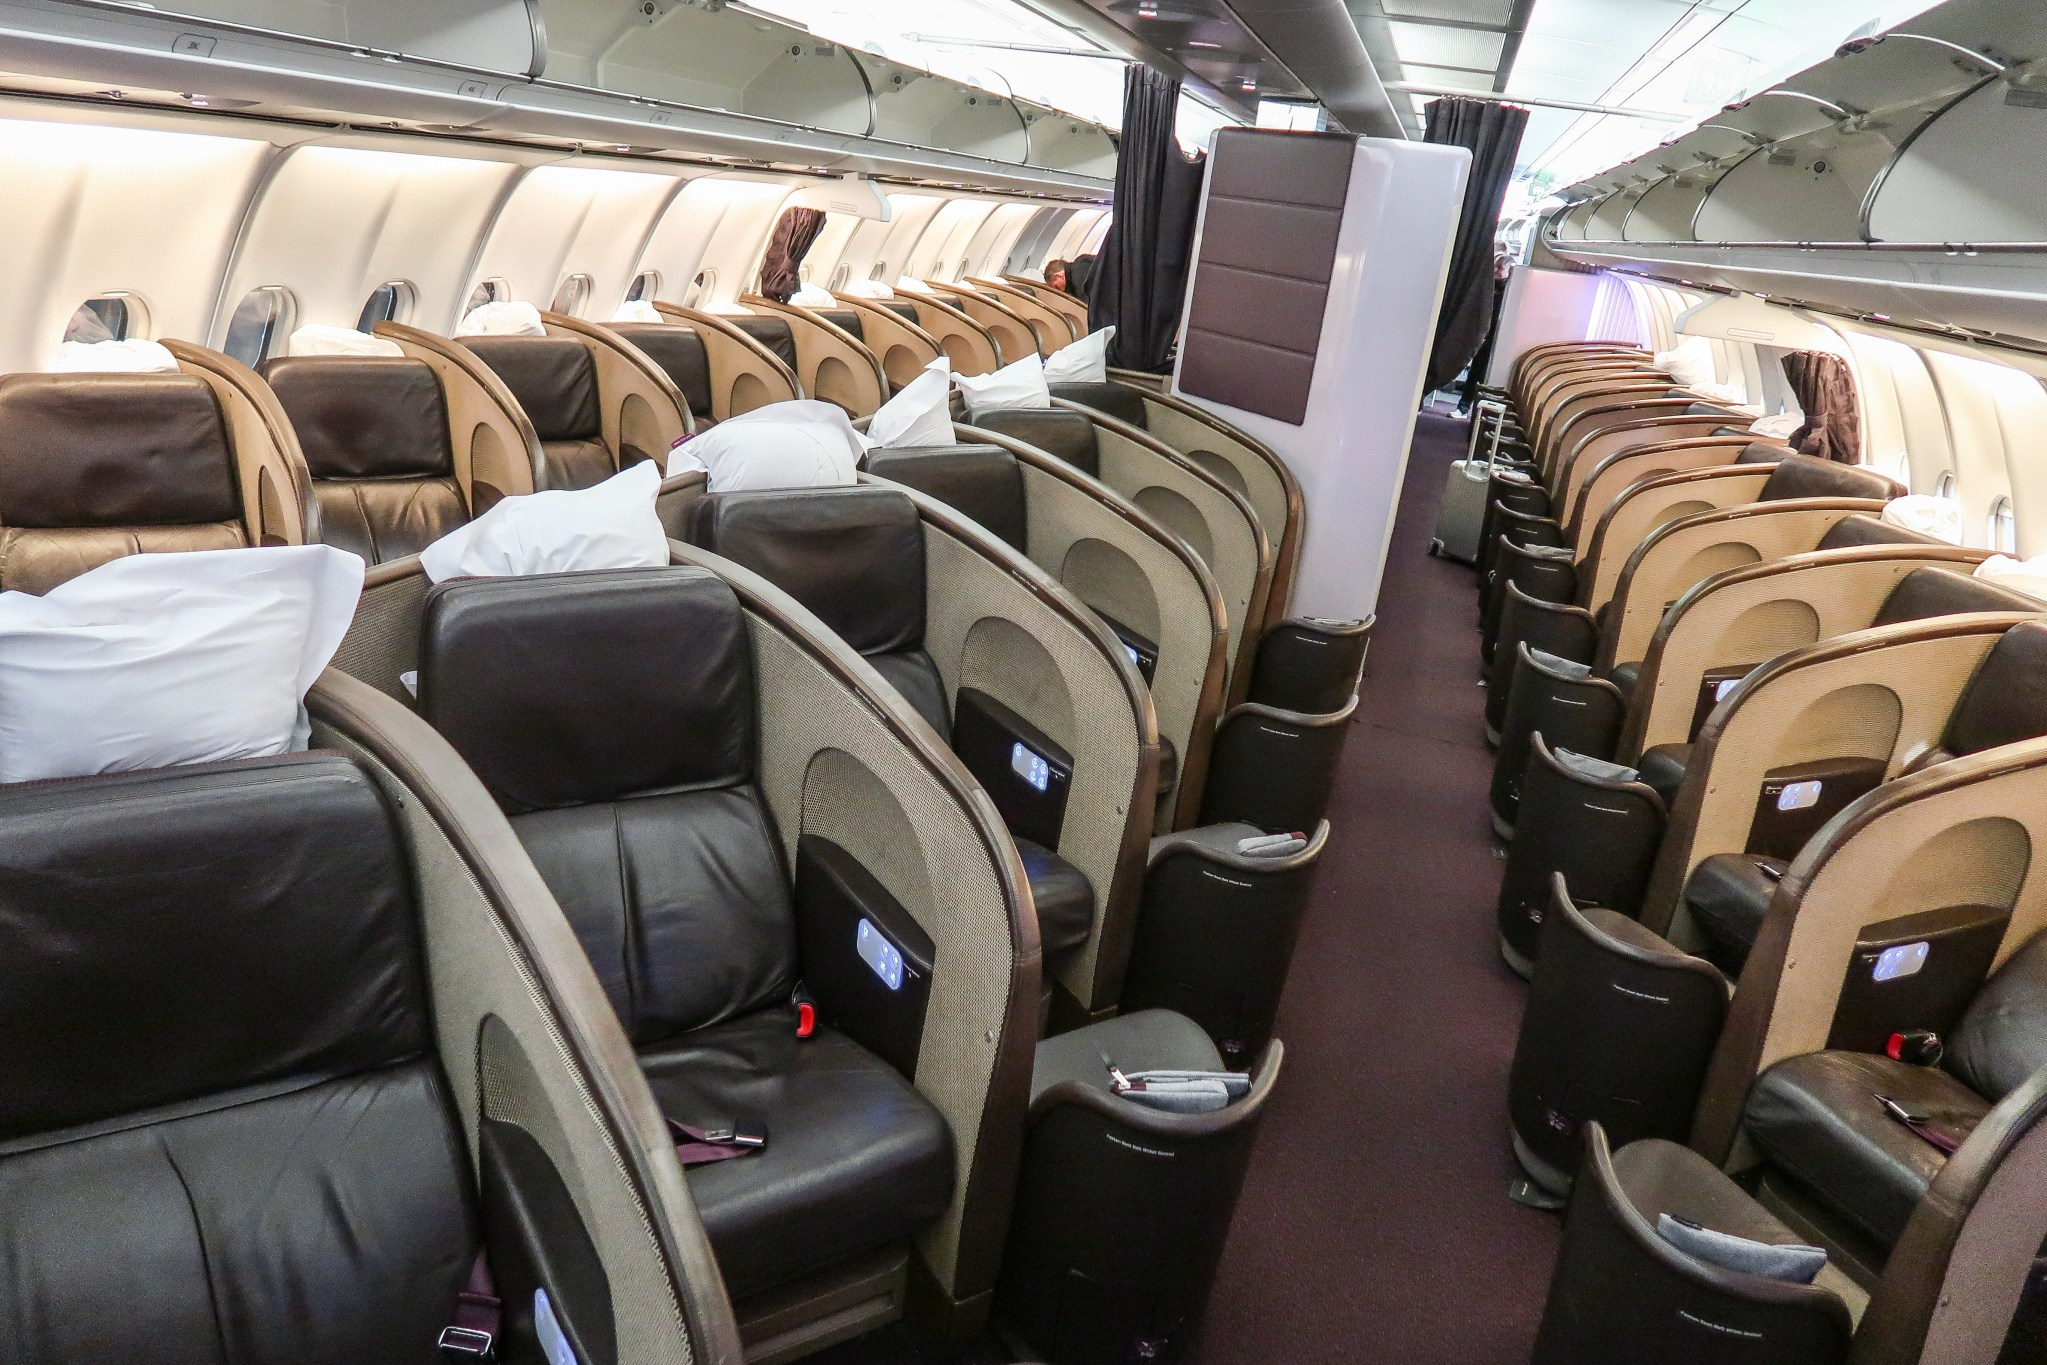 Virgin Atlantic A340 Upper Class Cabin Interior